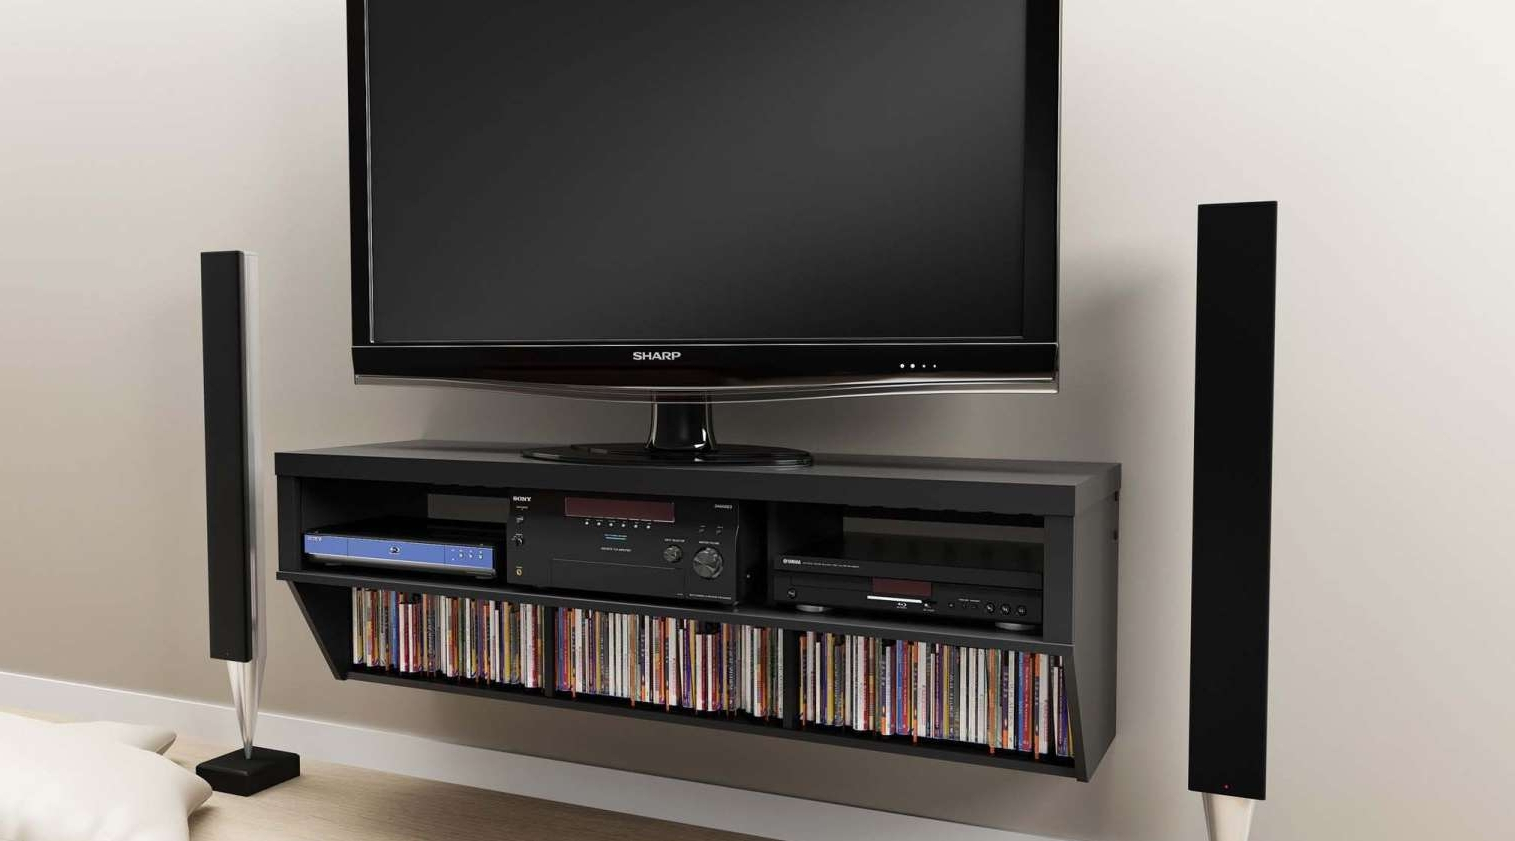 Most Popular Richer Sounds Tv Stands Designs Innovative 1515×841 Attachment Regarding Richer Sounds Tv Stand (Gallery 7 of 20)